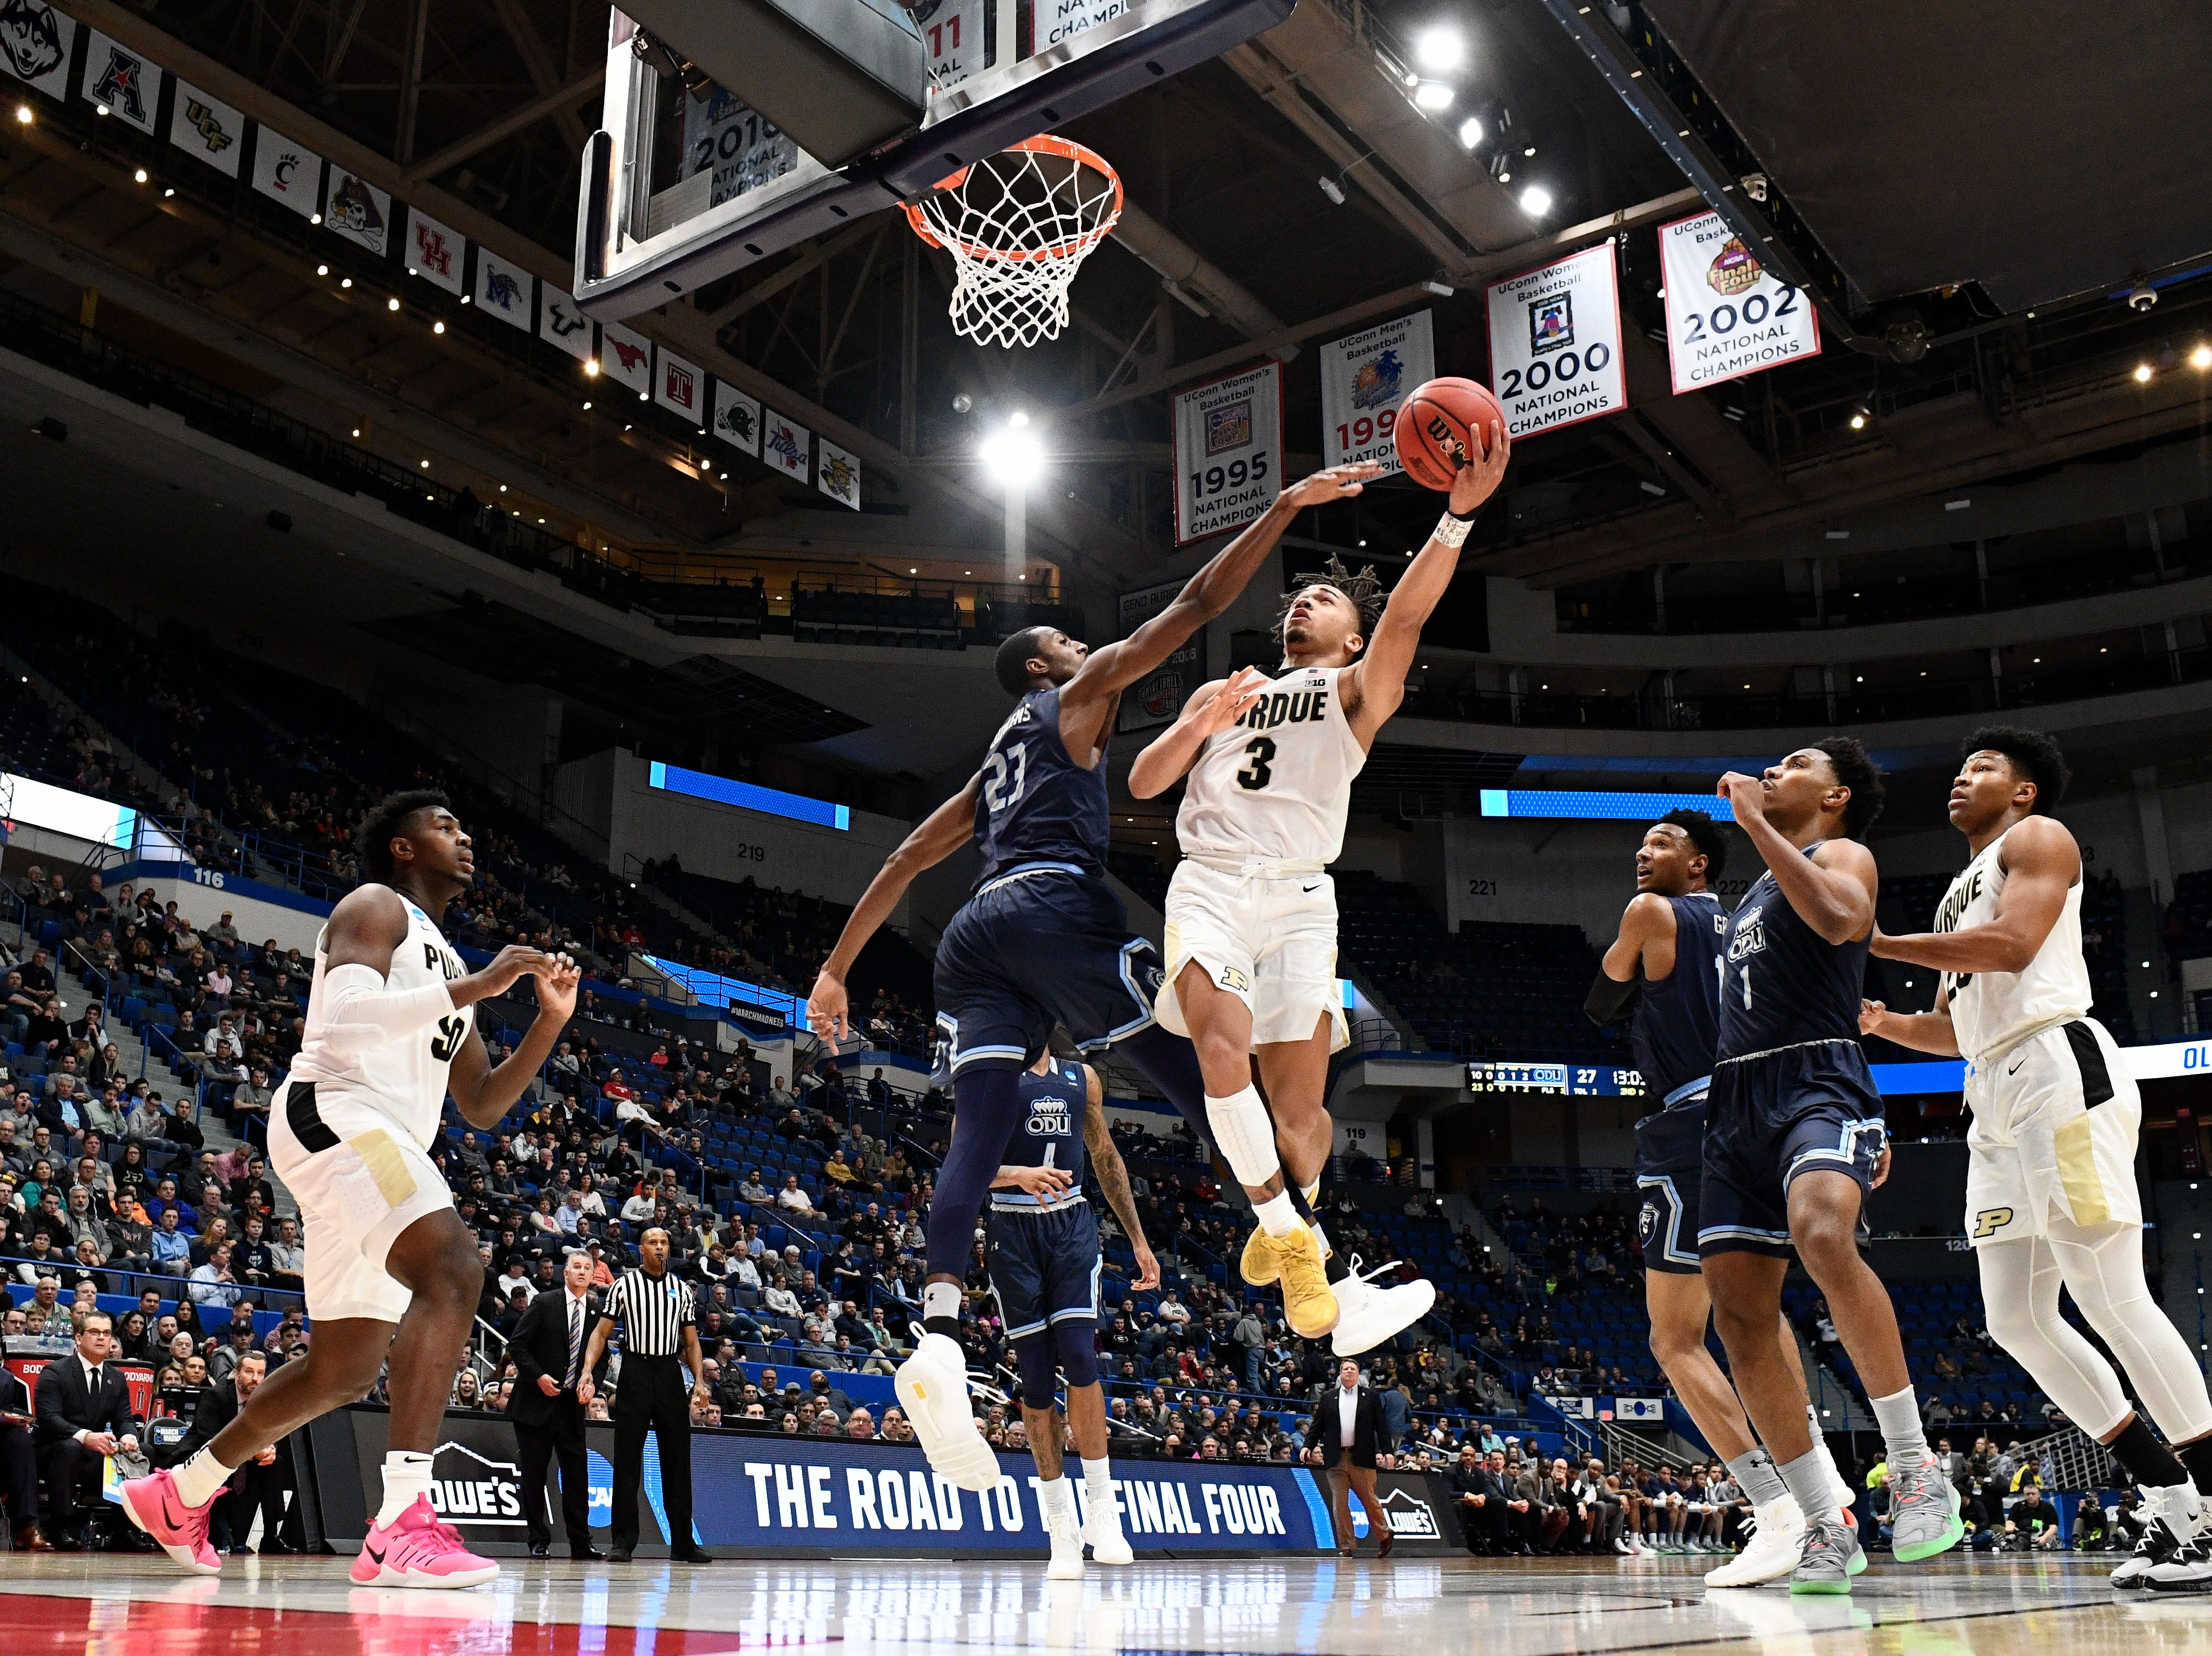 Mar 21, 2019; Hartford, CT, USA; Purdue Boilermakers guard Carsen Edwards (3) attempts a layup in front of Old Dominion Monarchs forward Dajour Dickens (23) during the second half of a game in the first round of the 2019 NCAA Tournament at XL Center. Mandatory Credit: Robert Deutsch-USA TODAY Sports